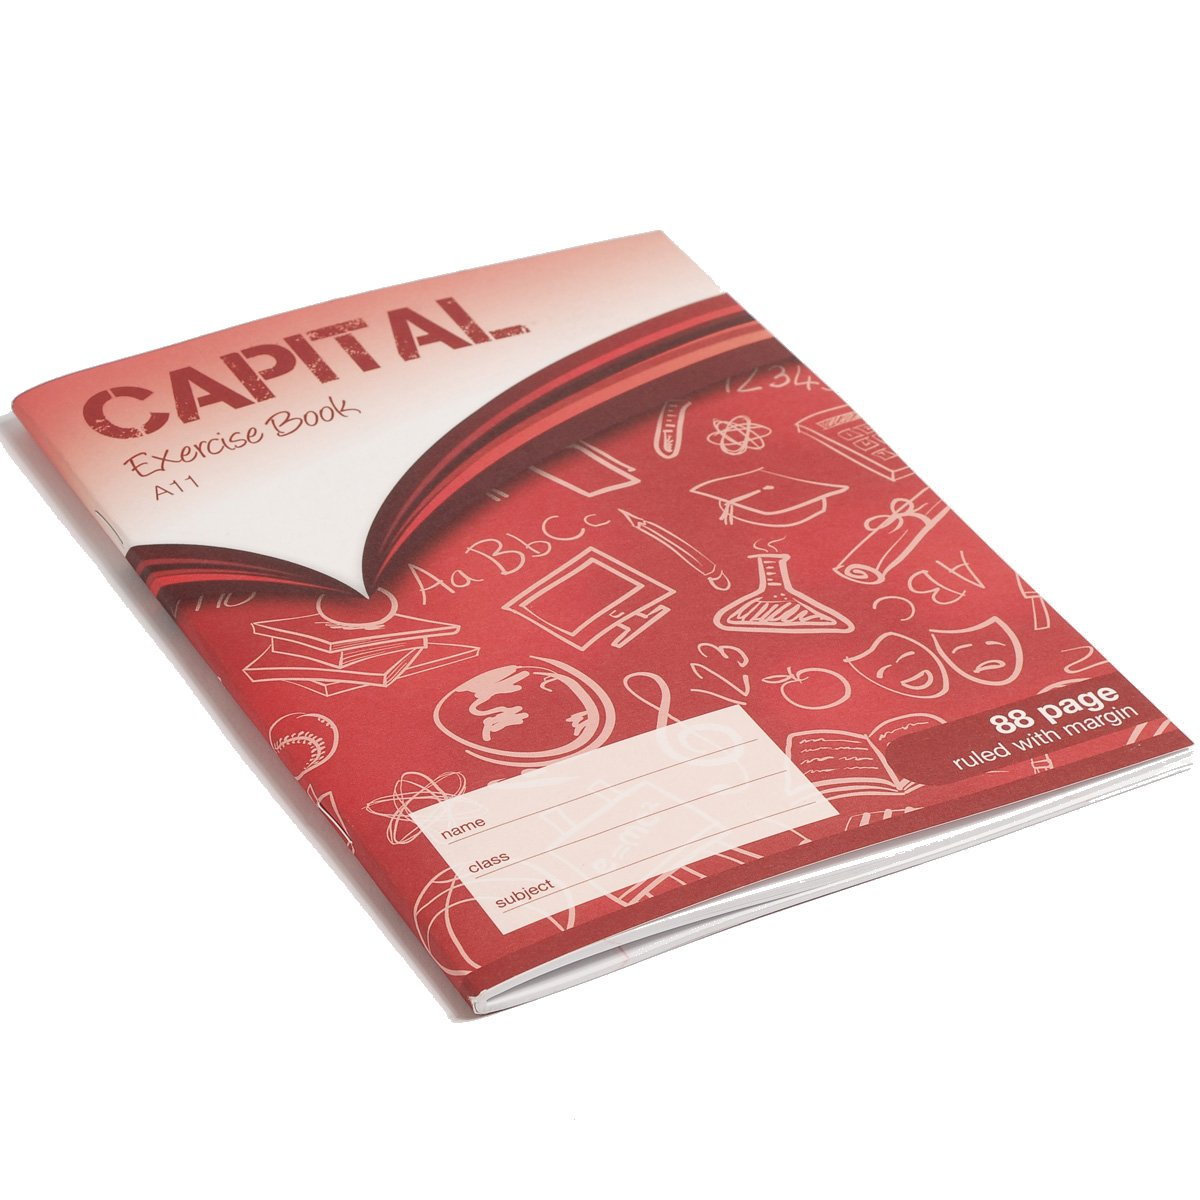 CAPITAL F8M 8x6.5 inch 88 Page Printed Exercise Book